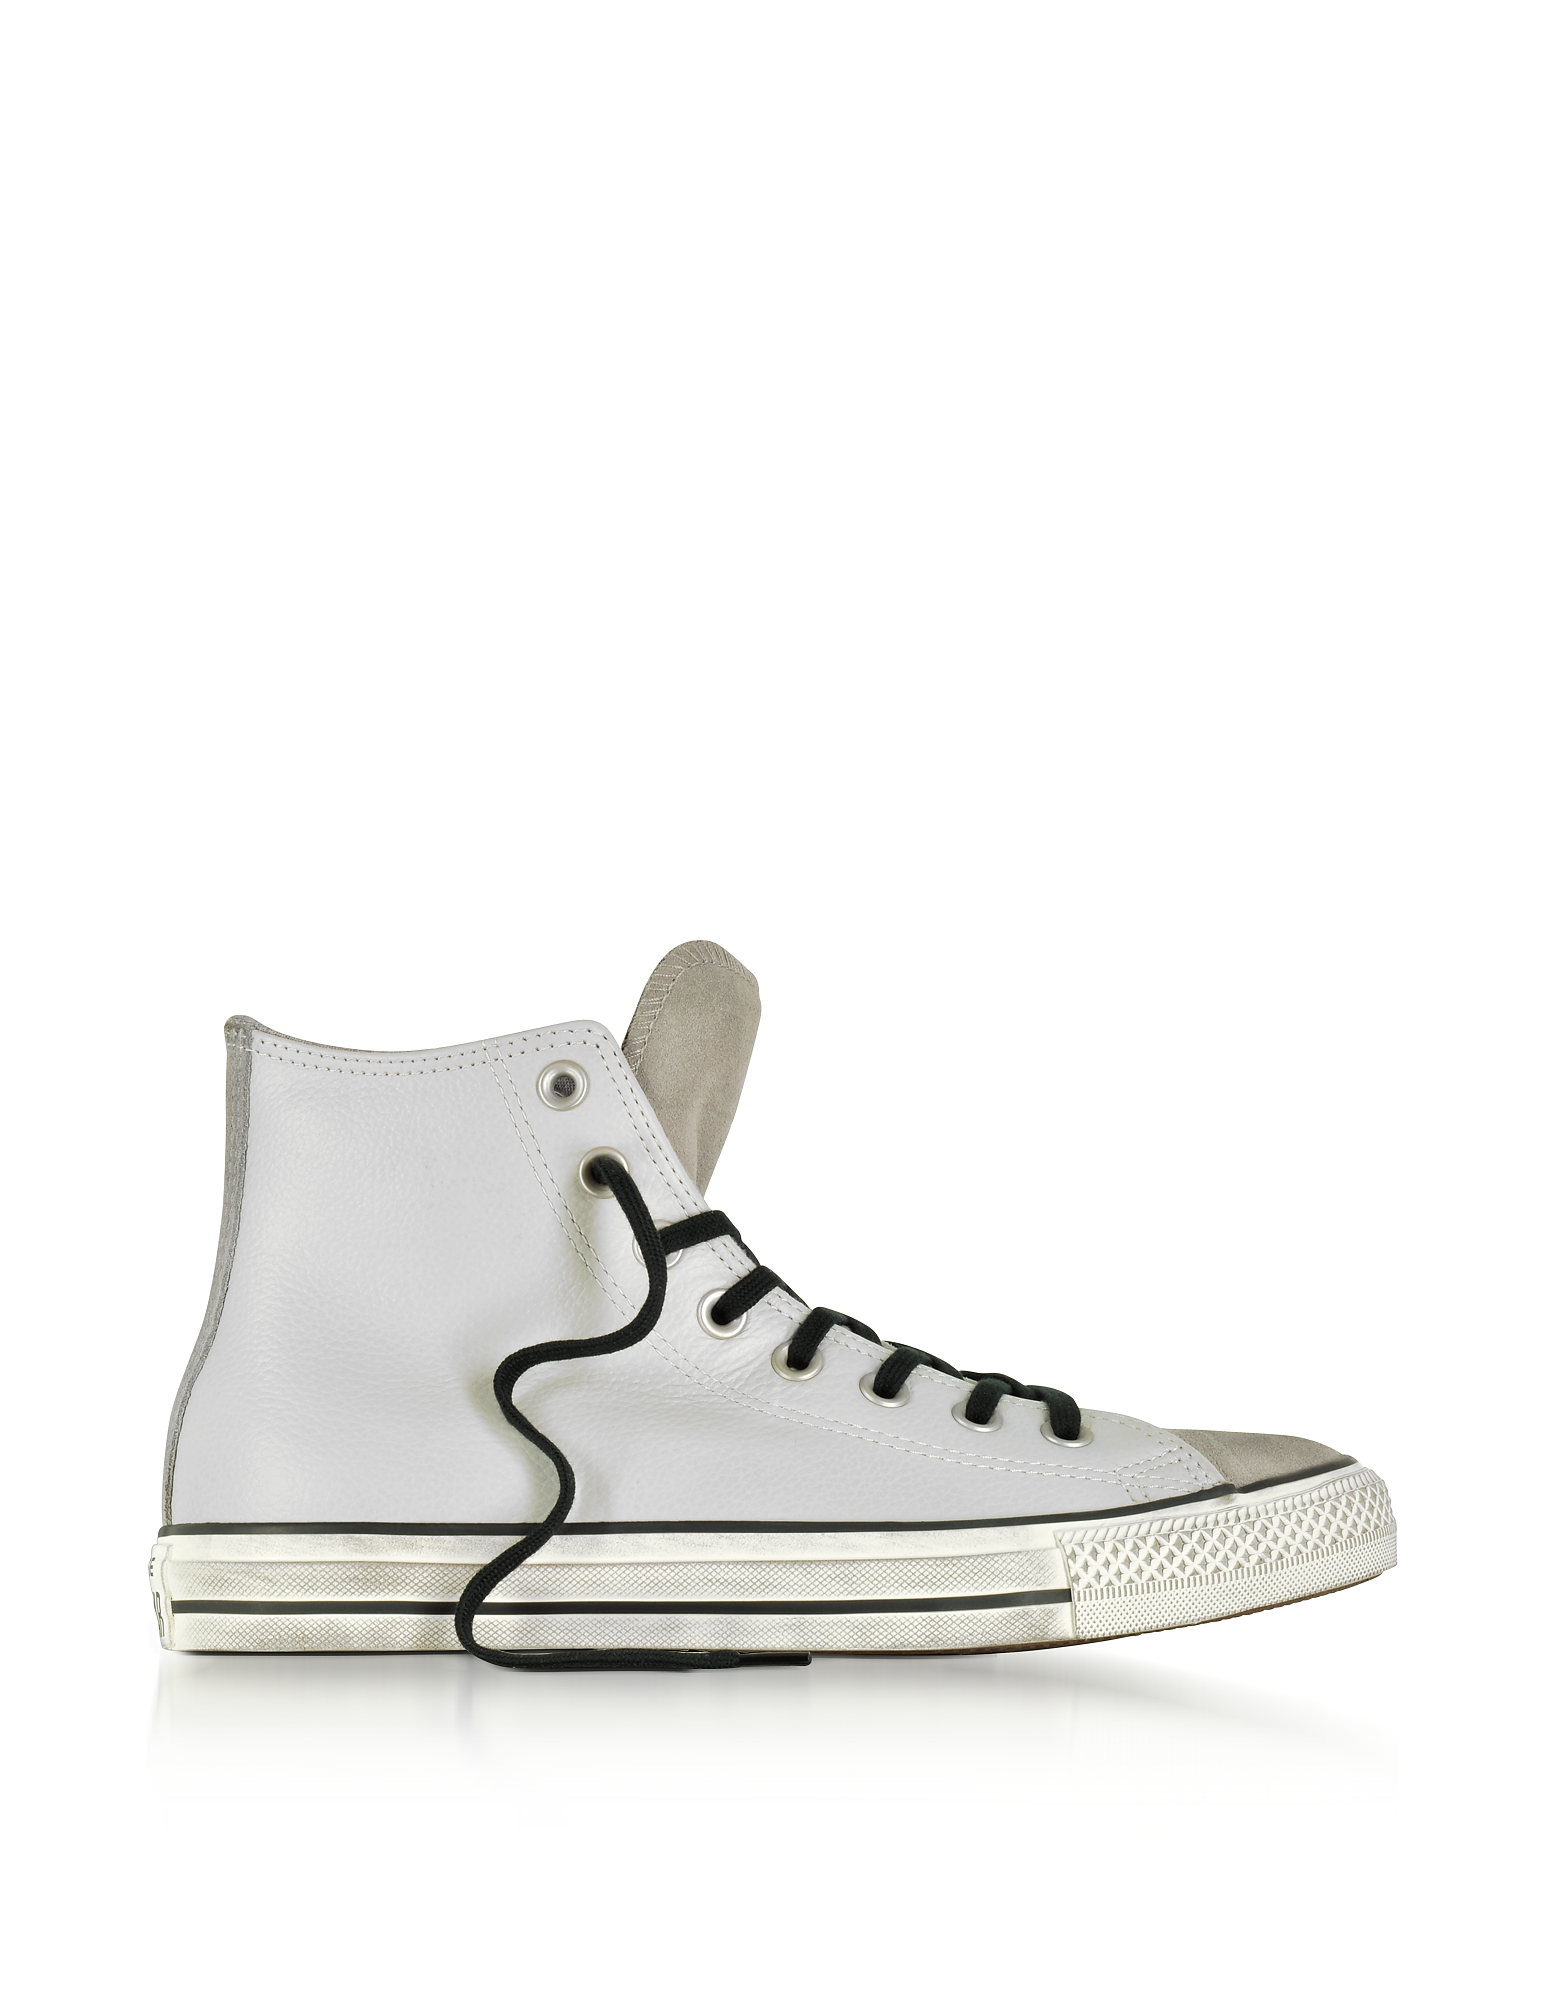 Converse Limited Edition Shoes, Chuck Taylor All Star High Stone Leather and Suede Sneakers